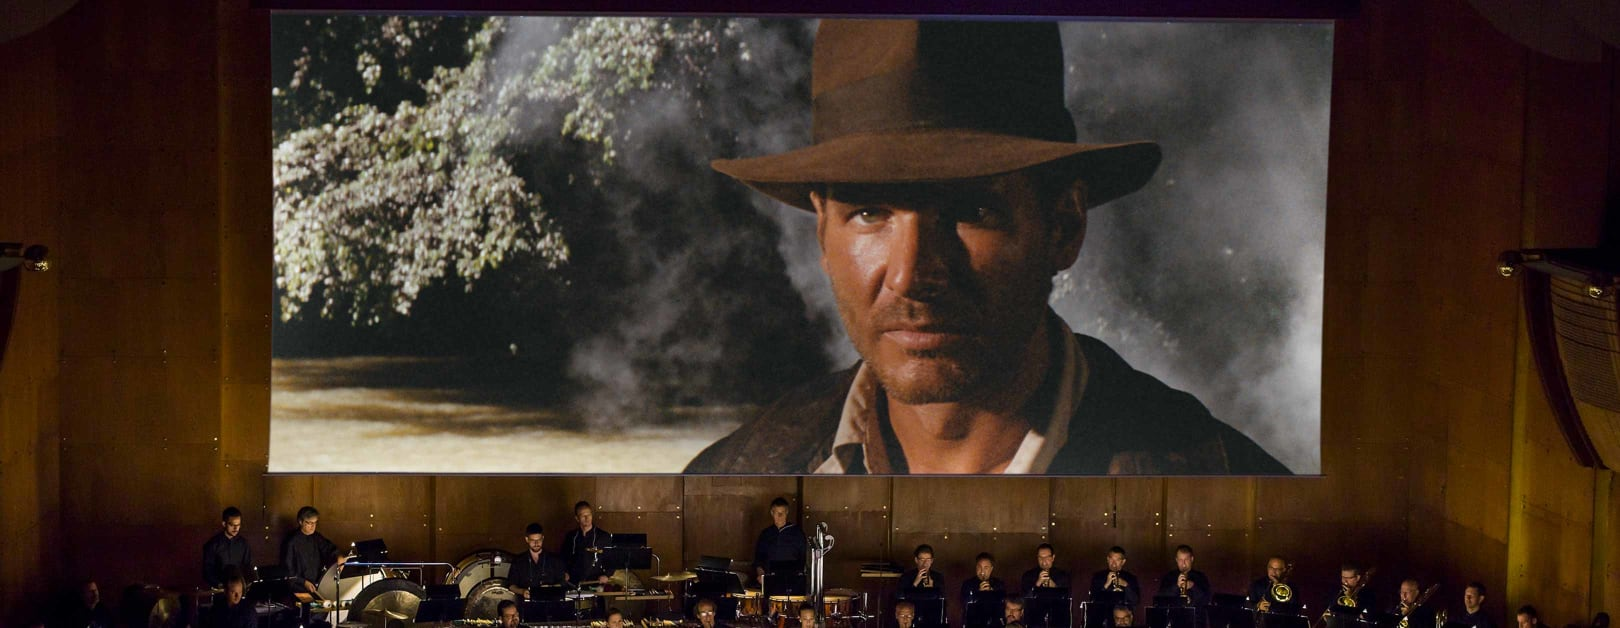 CANCELLED: Raiders of the Lost Ark in Concert